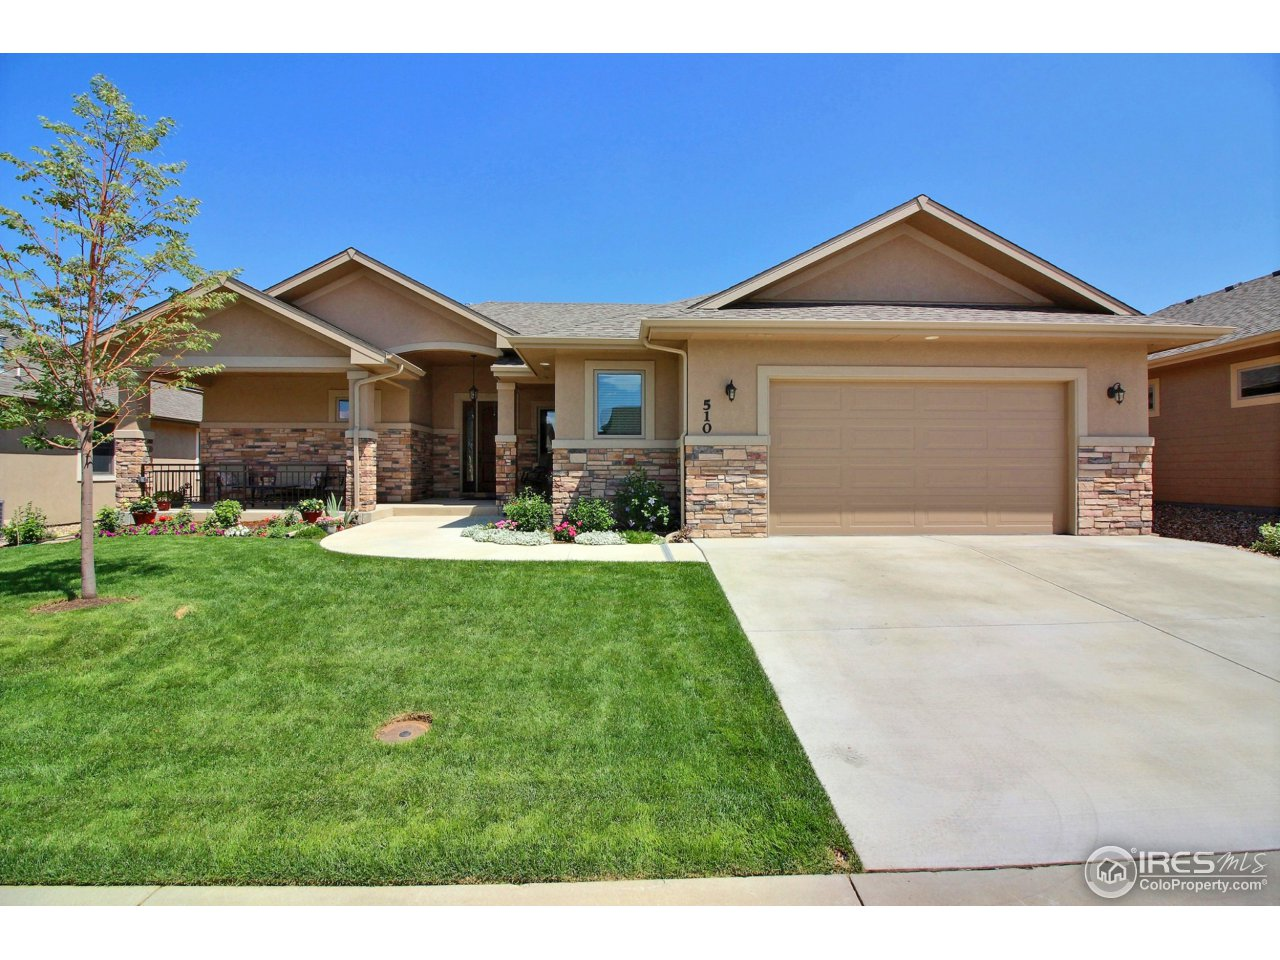 510 Double Tree Dr, Greeley, CO 80634